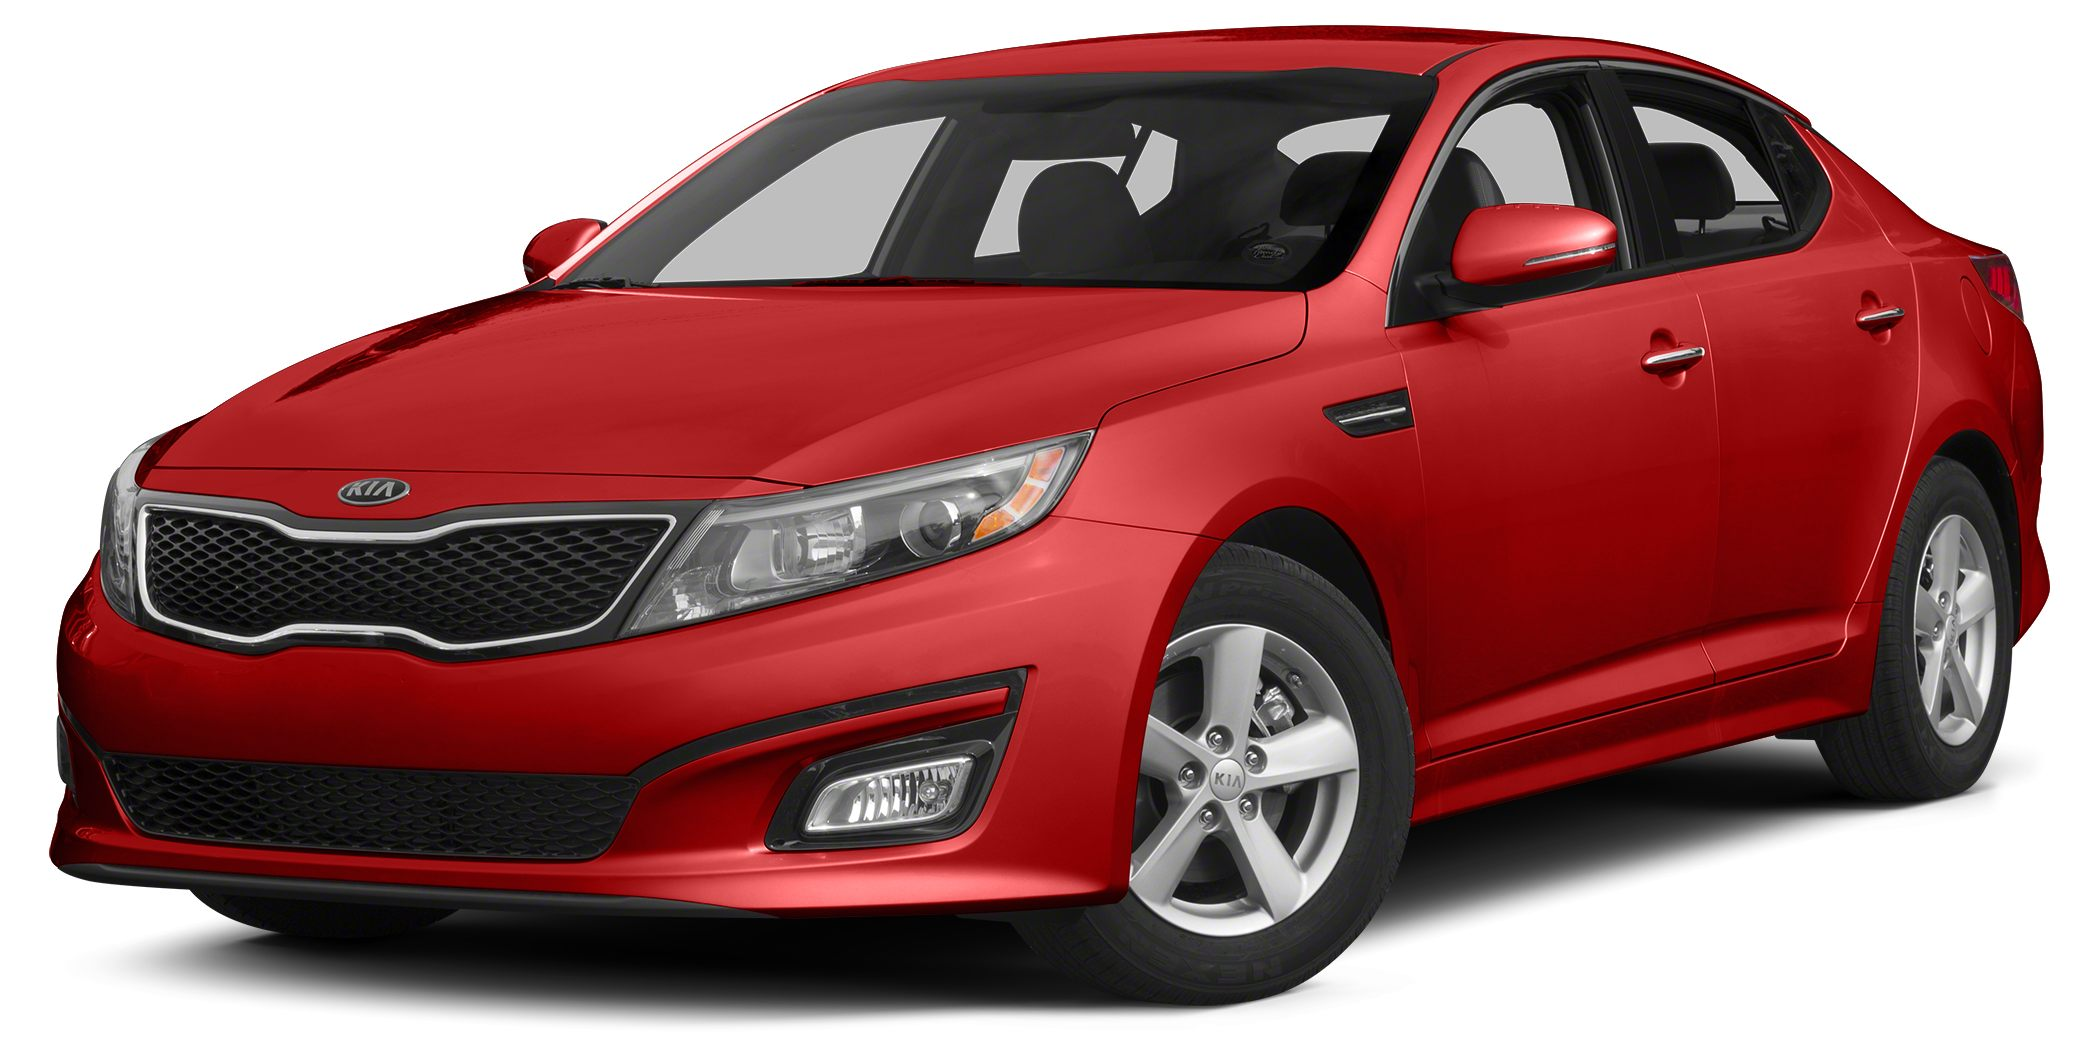 2014 Kia Optima EX Miles 9578Color Remington Red Metallic Stock M5861 VIN 5XXGN4A70EG325577